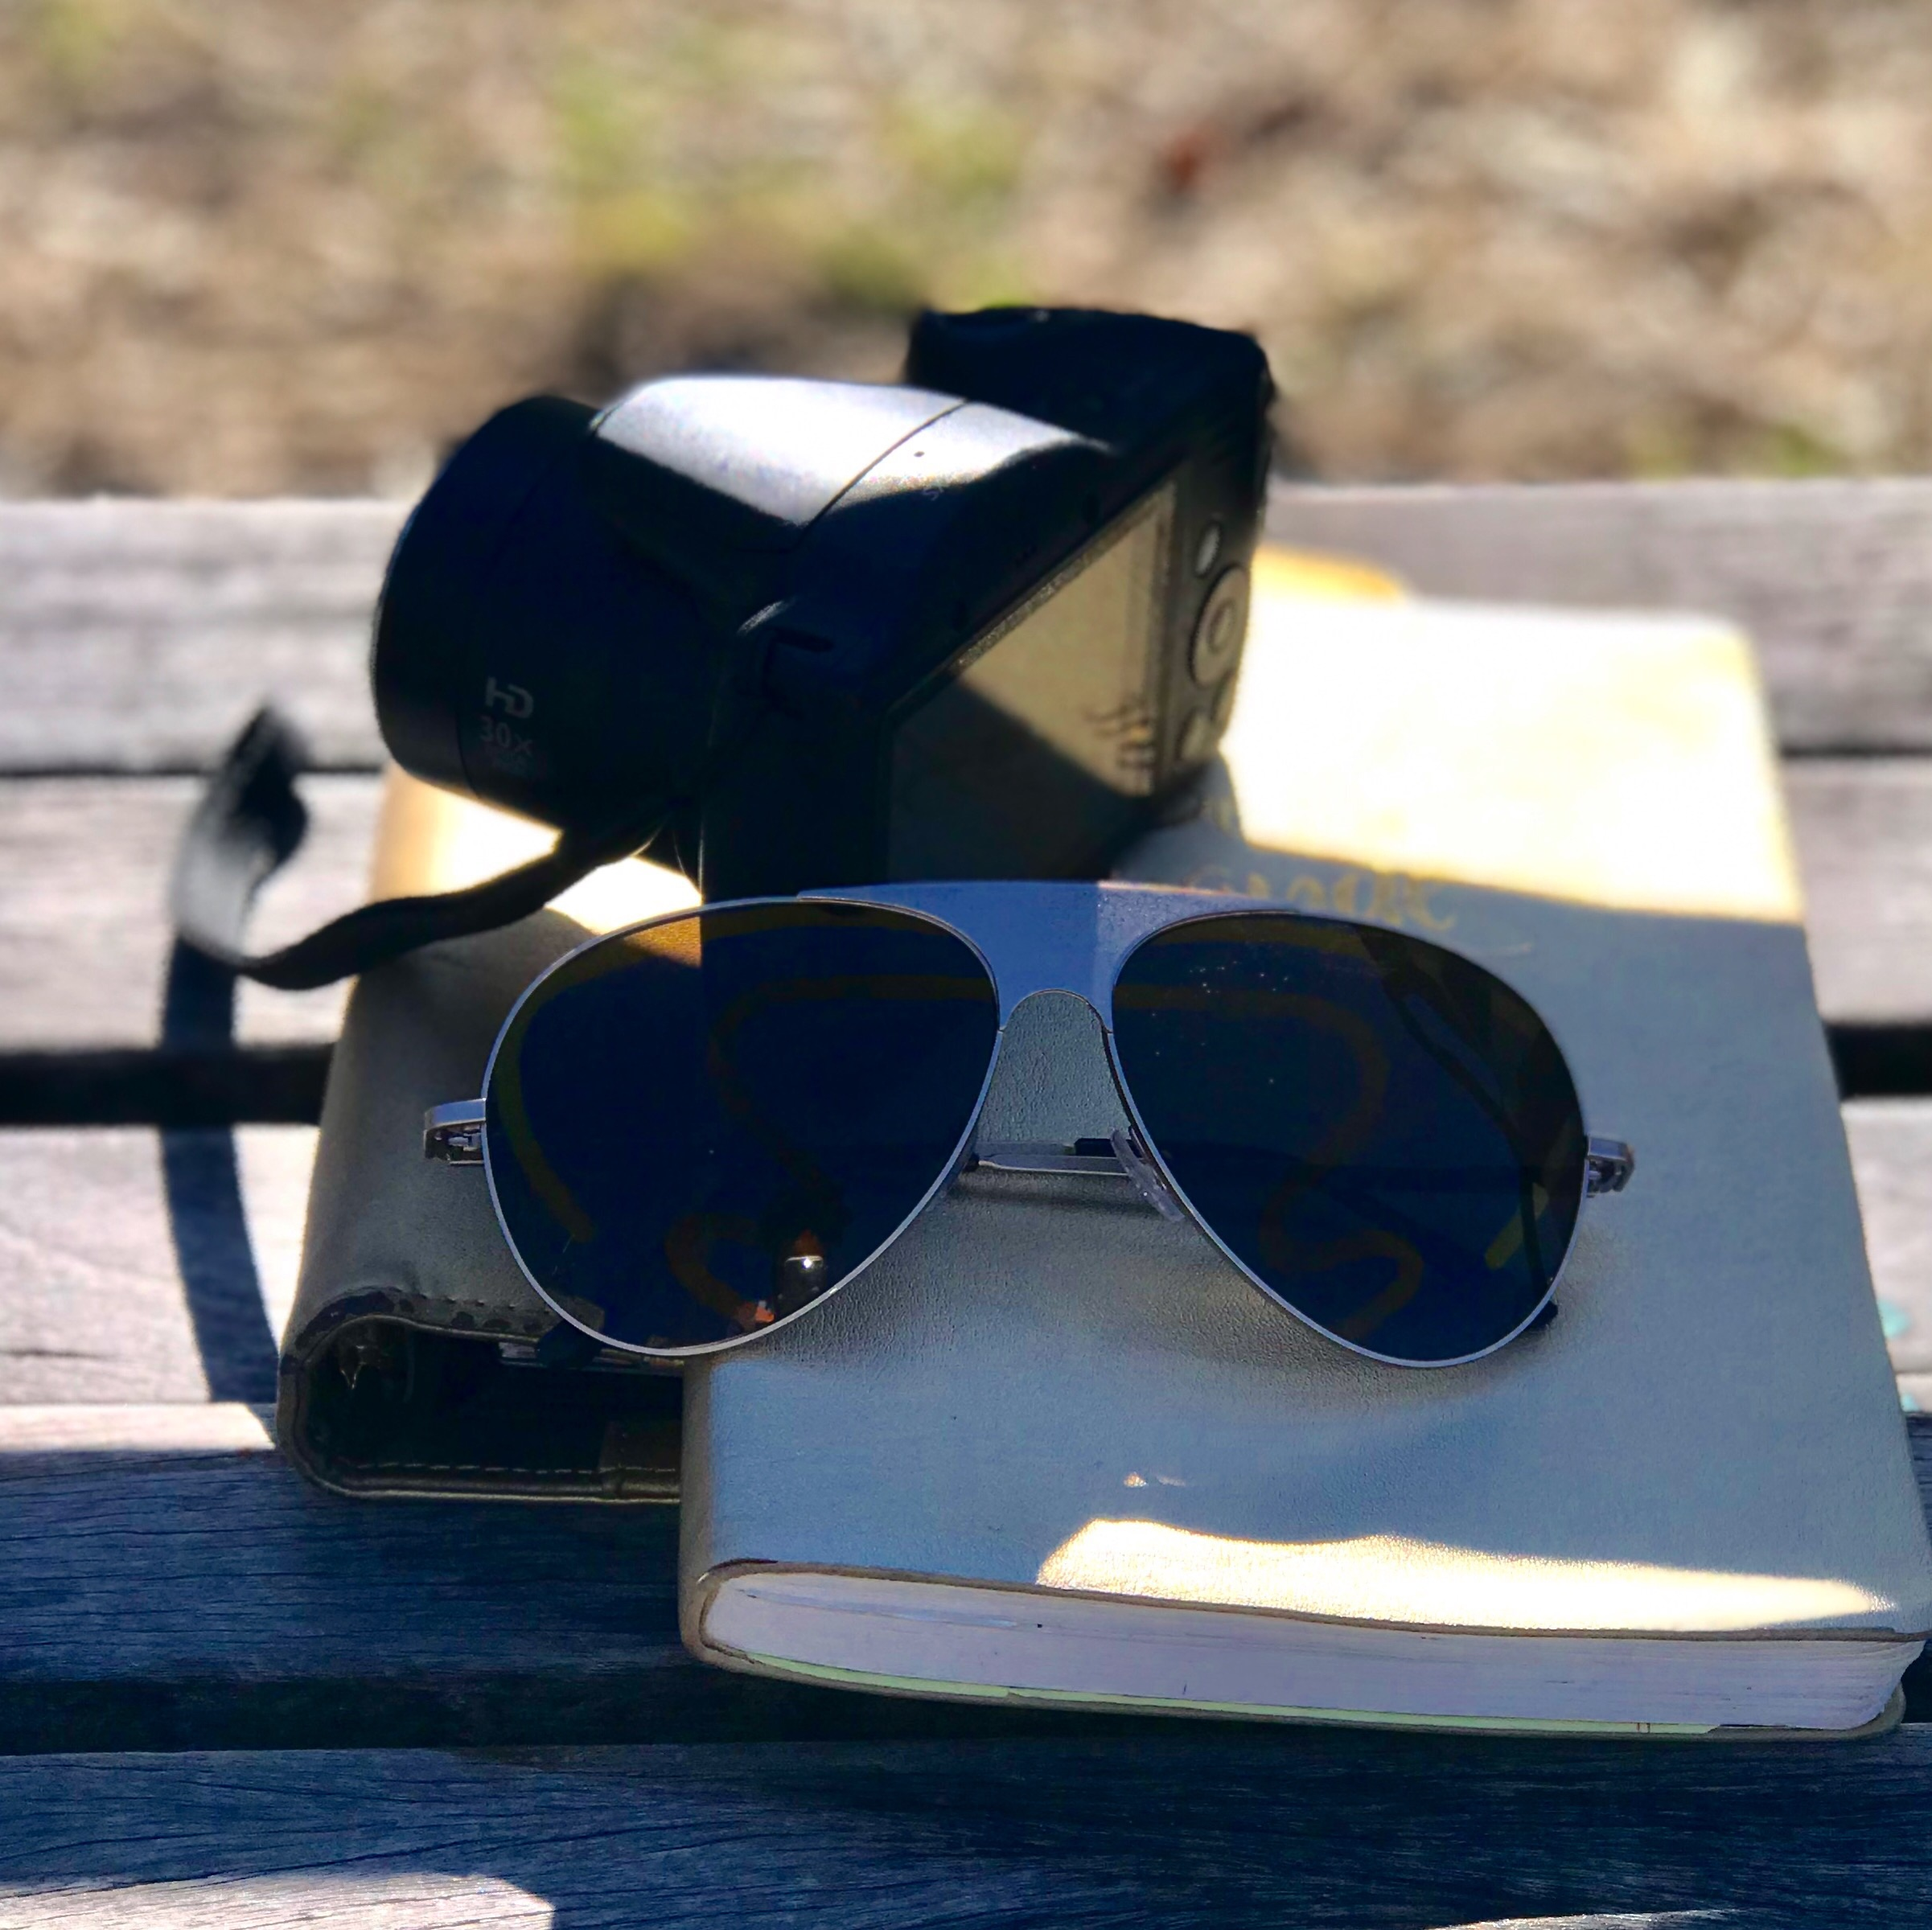 A Day with Vuliwear® Sunglasses - Scroll down to read more about latest trendsetter